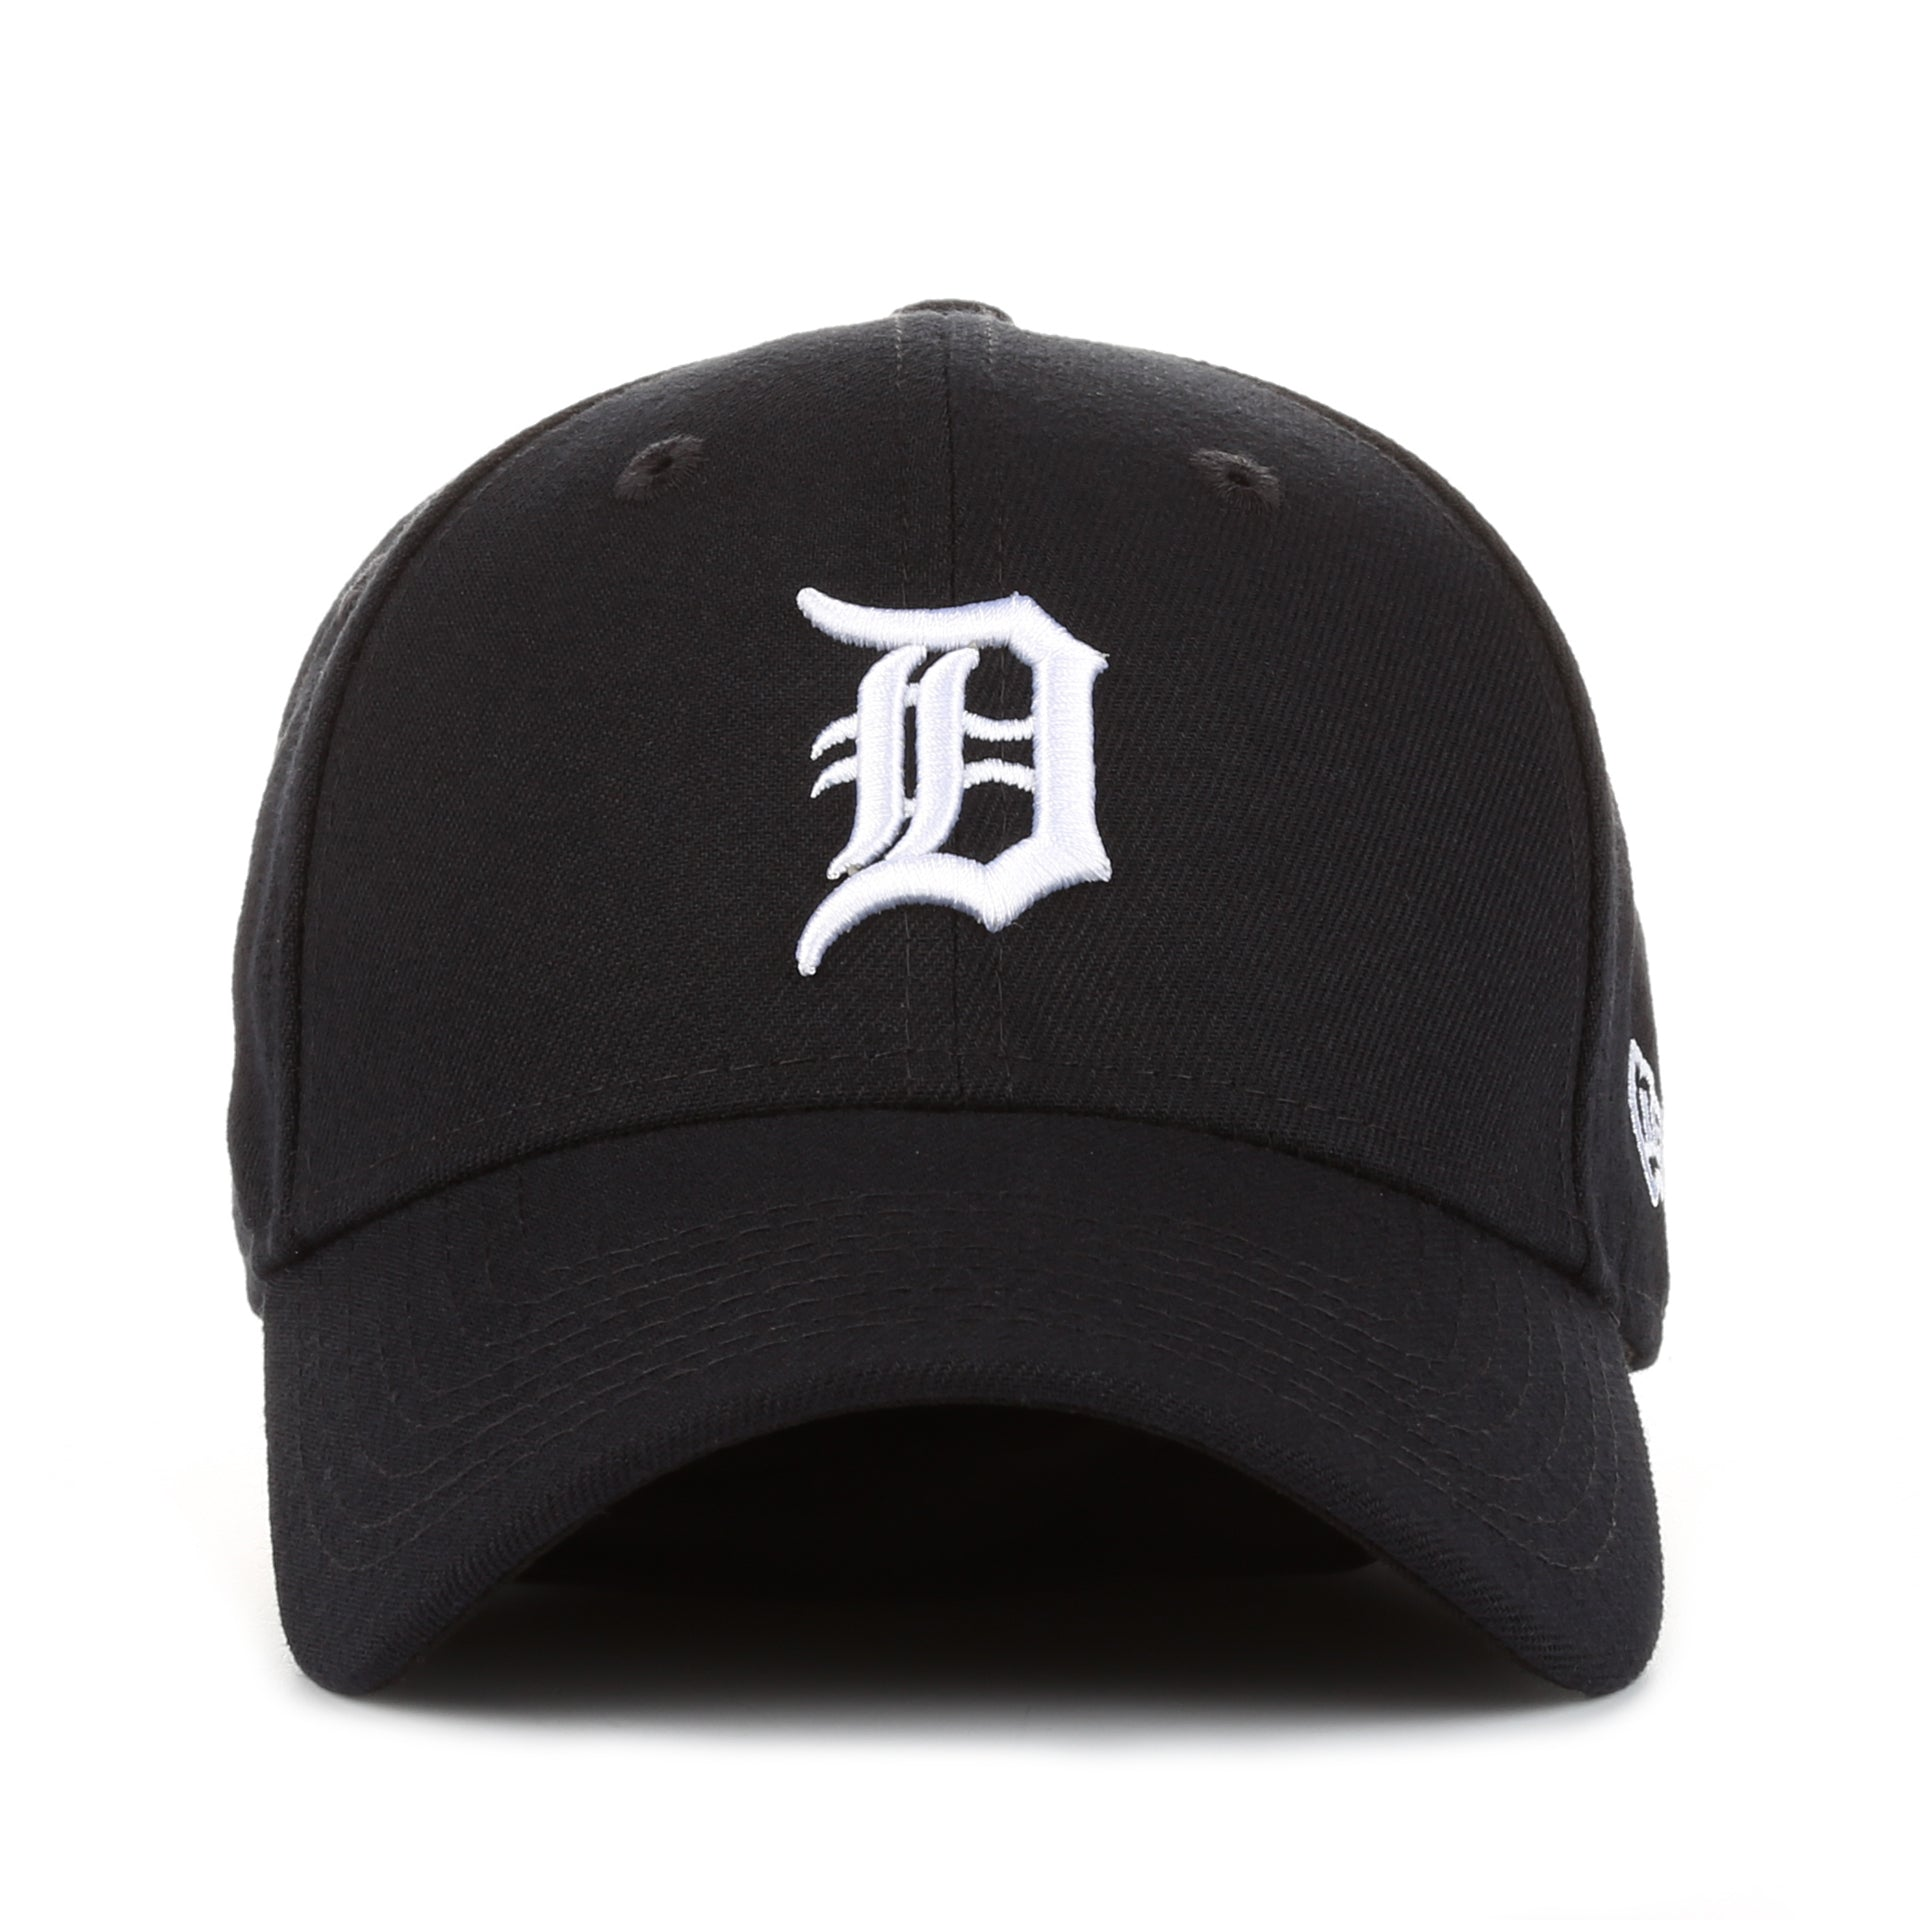 359c3ee330f New Era 9Forty The League Game Cap - Detroit Tigers Black - New Star